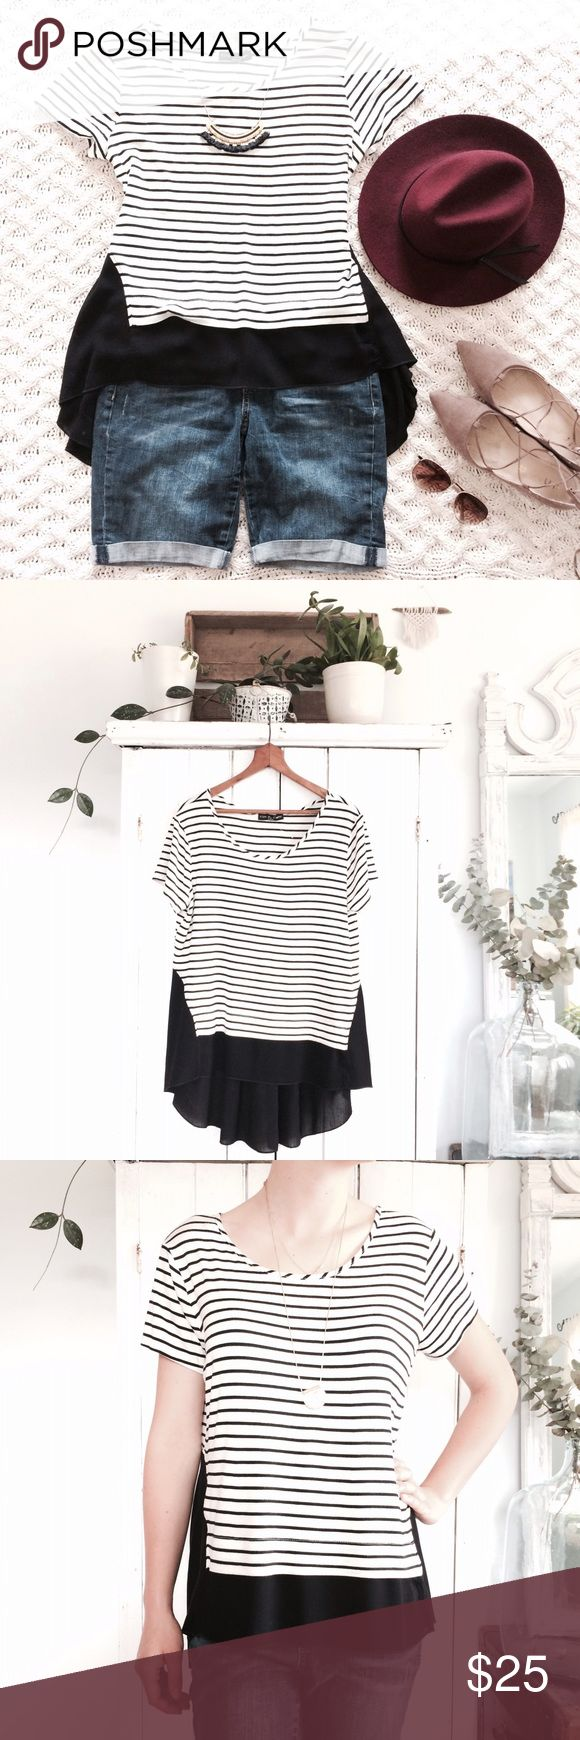 🆕 NWTs striped high low flowy tunic New with tag barb. Perfect condition. Black and white stripes with flowy back panel. High low design. Size medium. Bust 20 inches. Length 24 in front and 31 inches in the back. (Measurements based on the medium.) Dramatic! Kim and Cami Tops Blouses